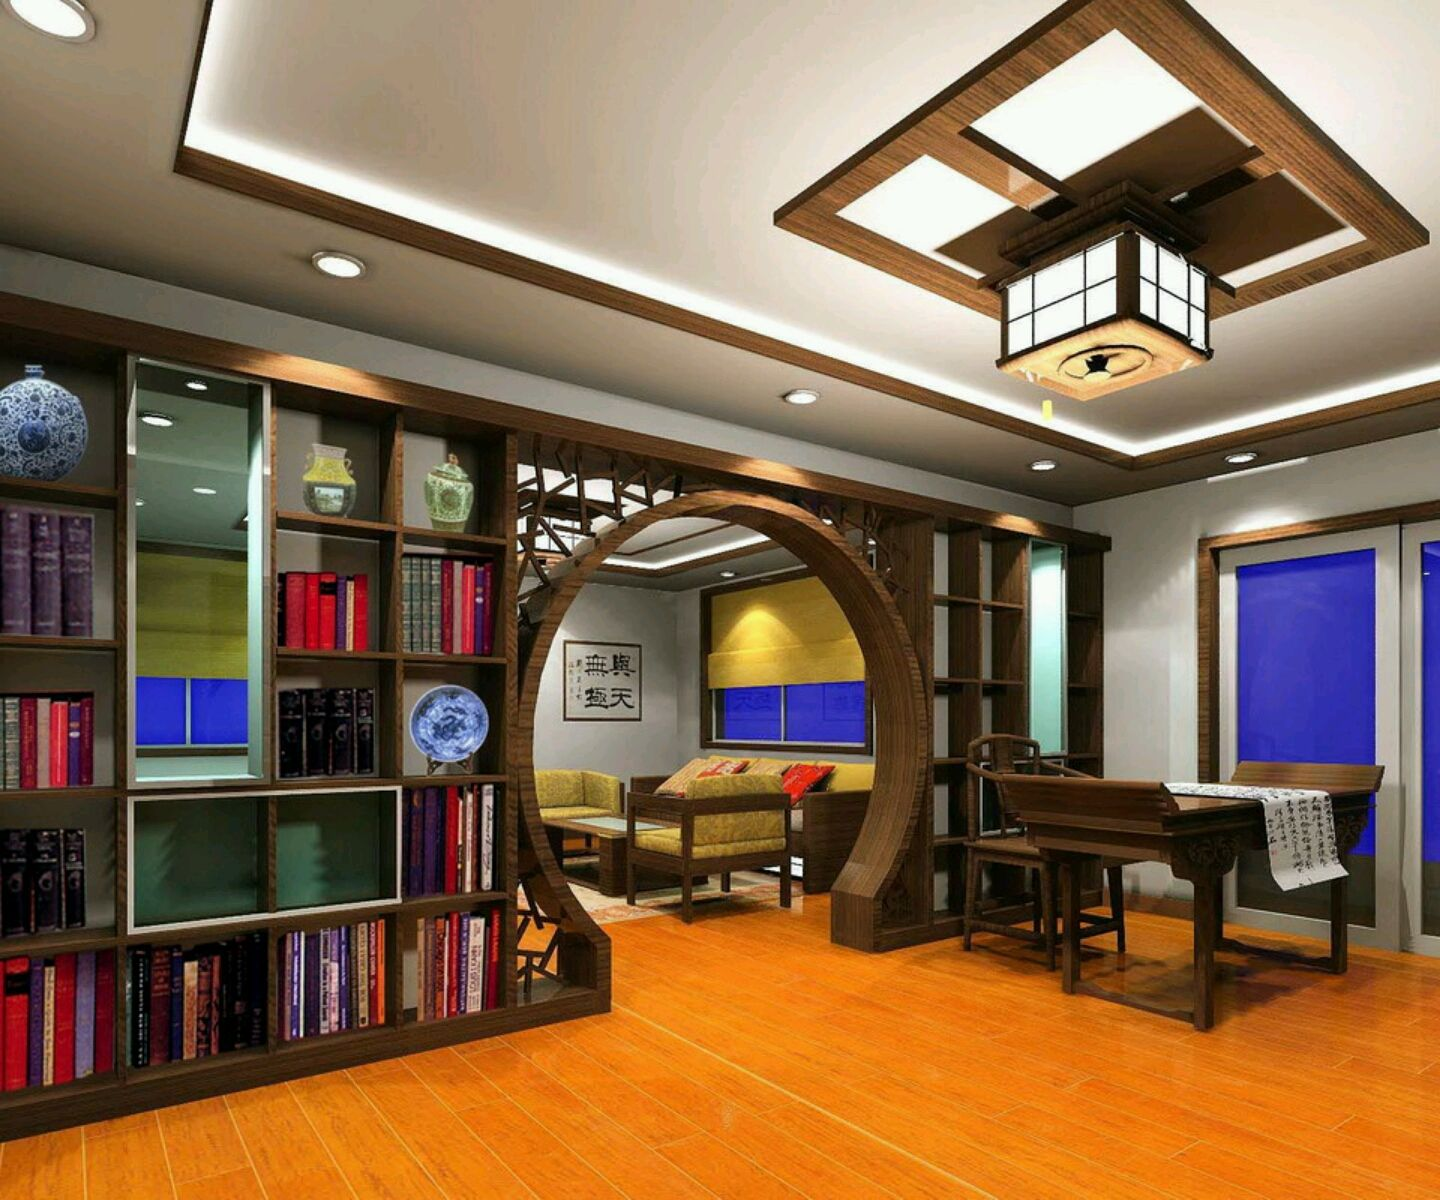 New Home Designs Latest Homes Interior Designs Studyrooms: Study Room Ideas - Google Search